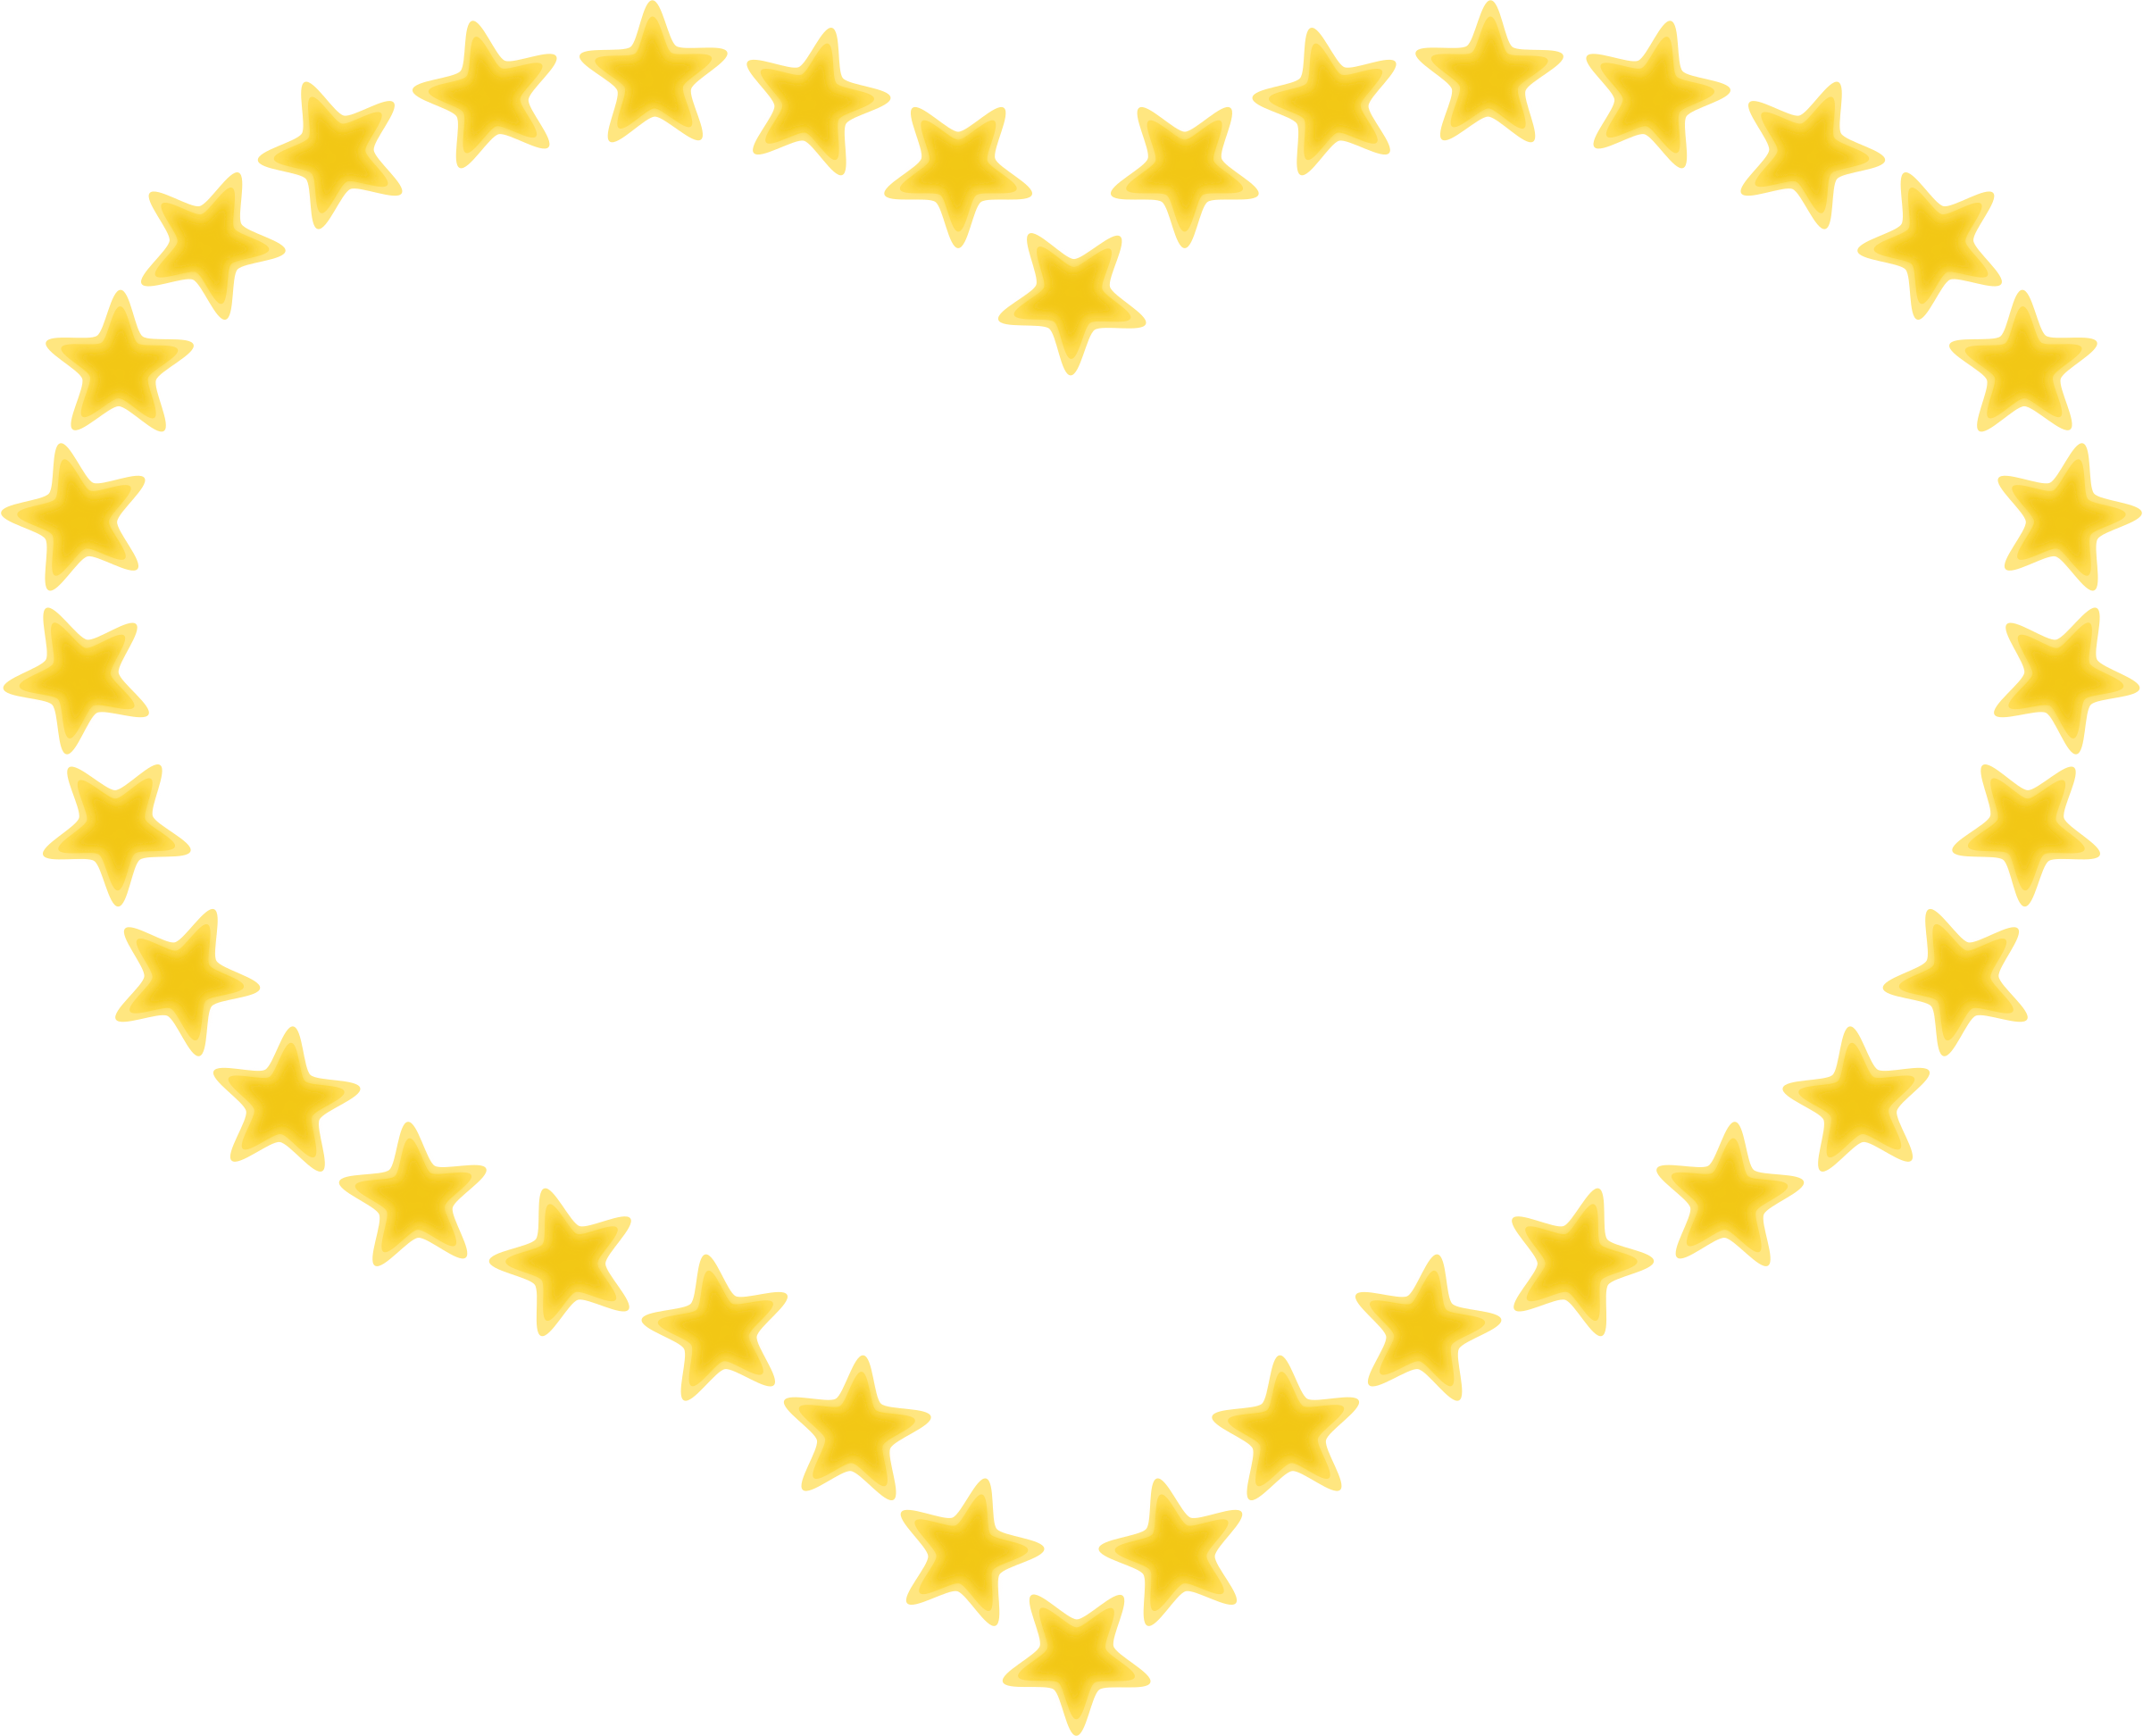 Star shapes clipart jpg library stock Clipart - Heart Shaped Border with Yellow Stars jpg library stock